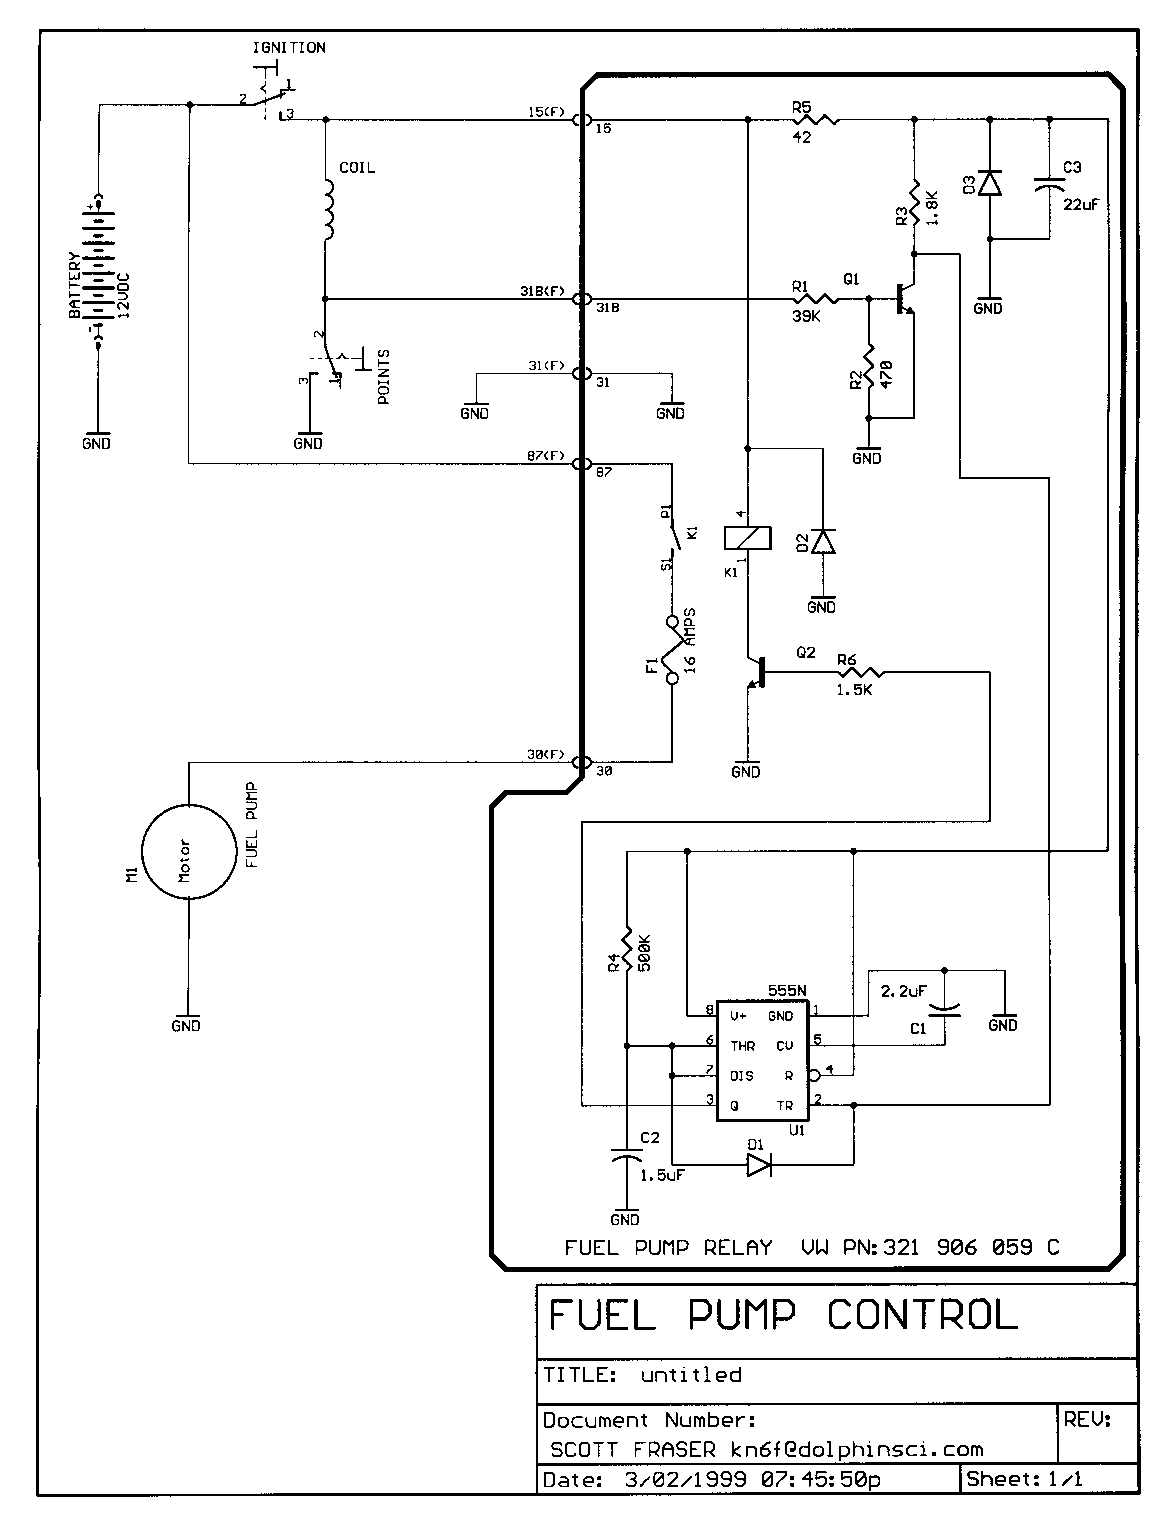 VWfuelPumpRelay huco fuel pump fuel system carbs by lotuselan net electric fuel pump diagram at soozxer.org